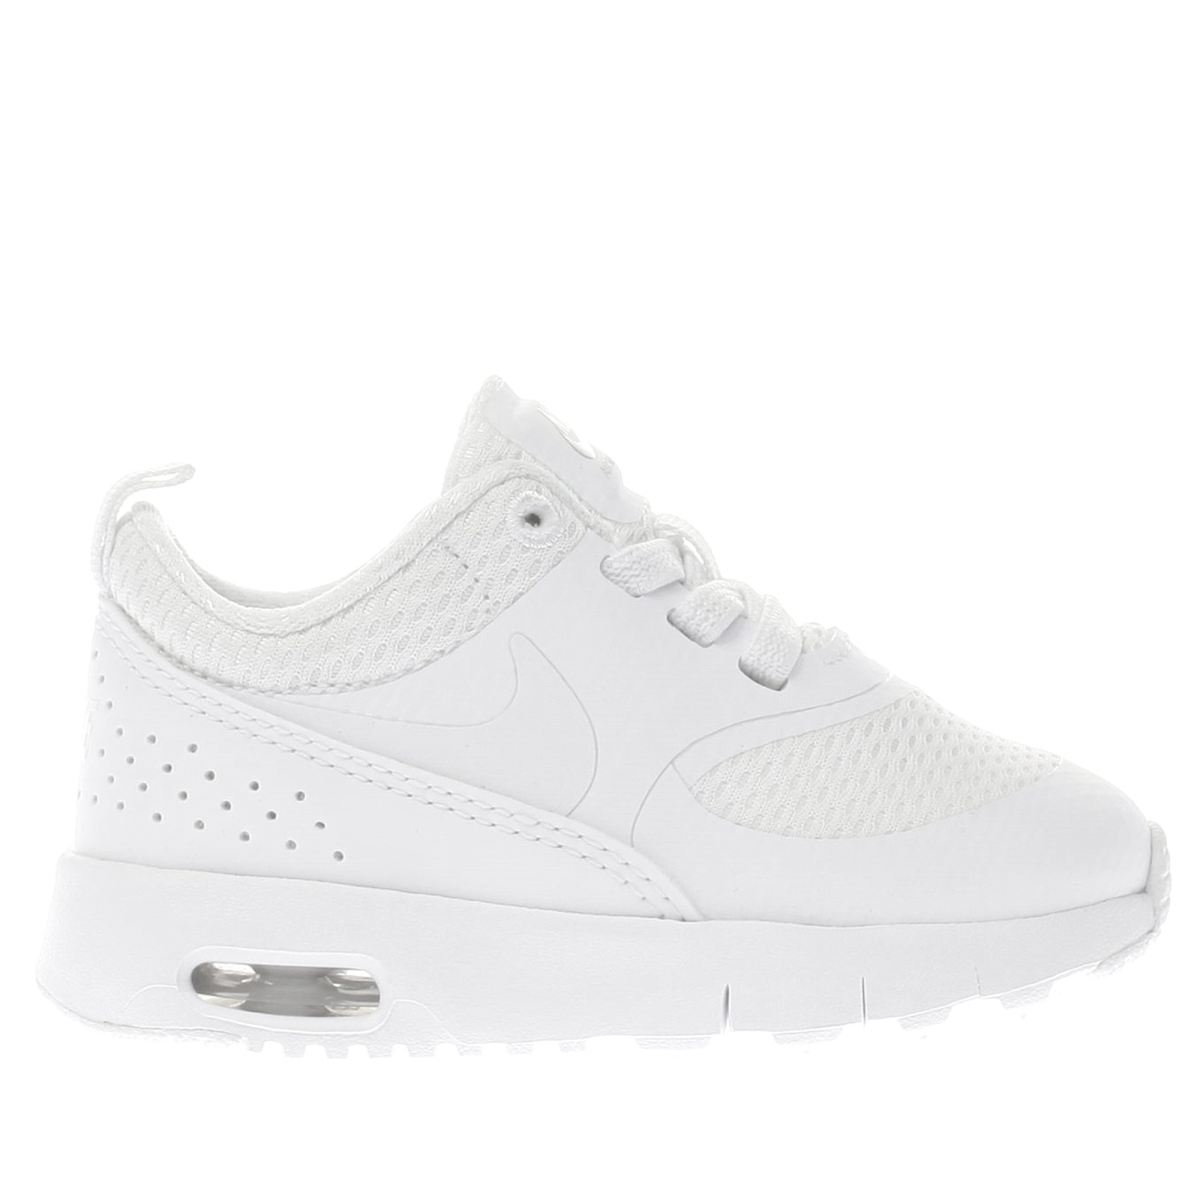 nike white air max thea Girls Toddler Trainers